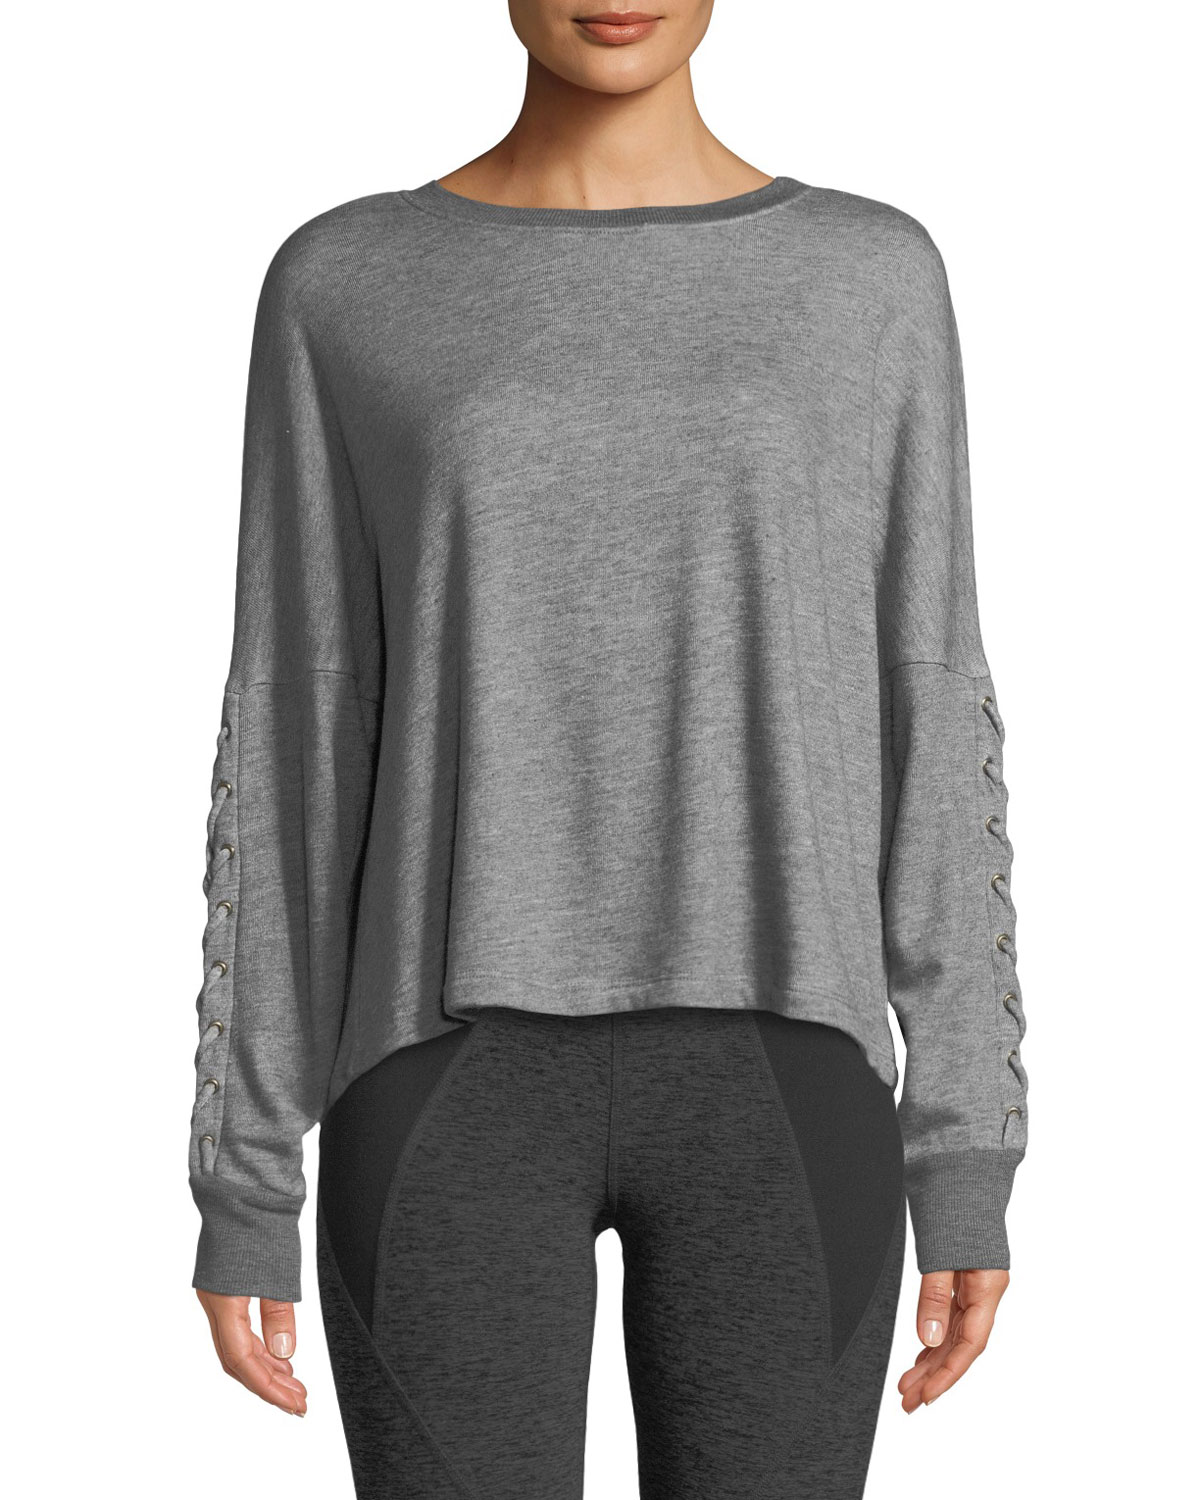 Lasso Lace-Up Draped Pullover Sweatshirt